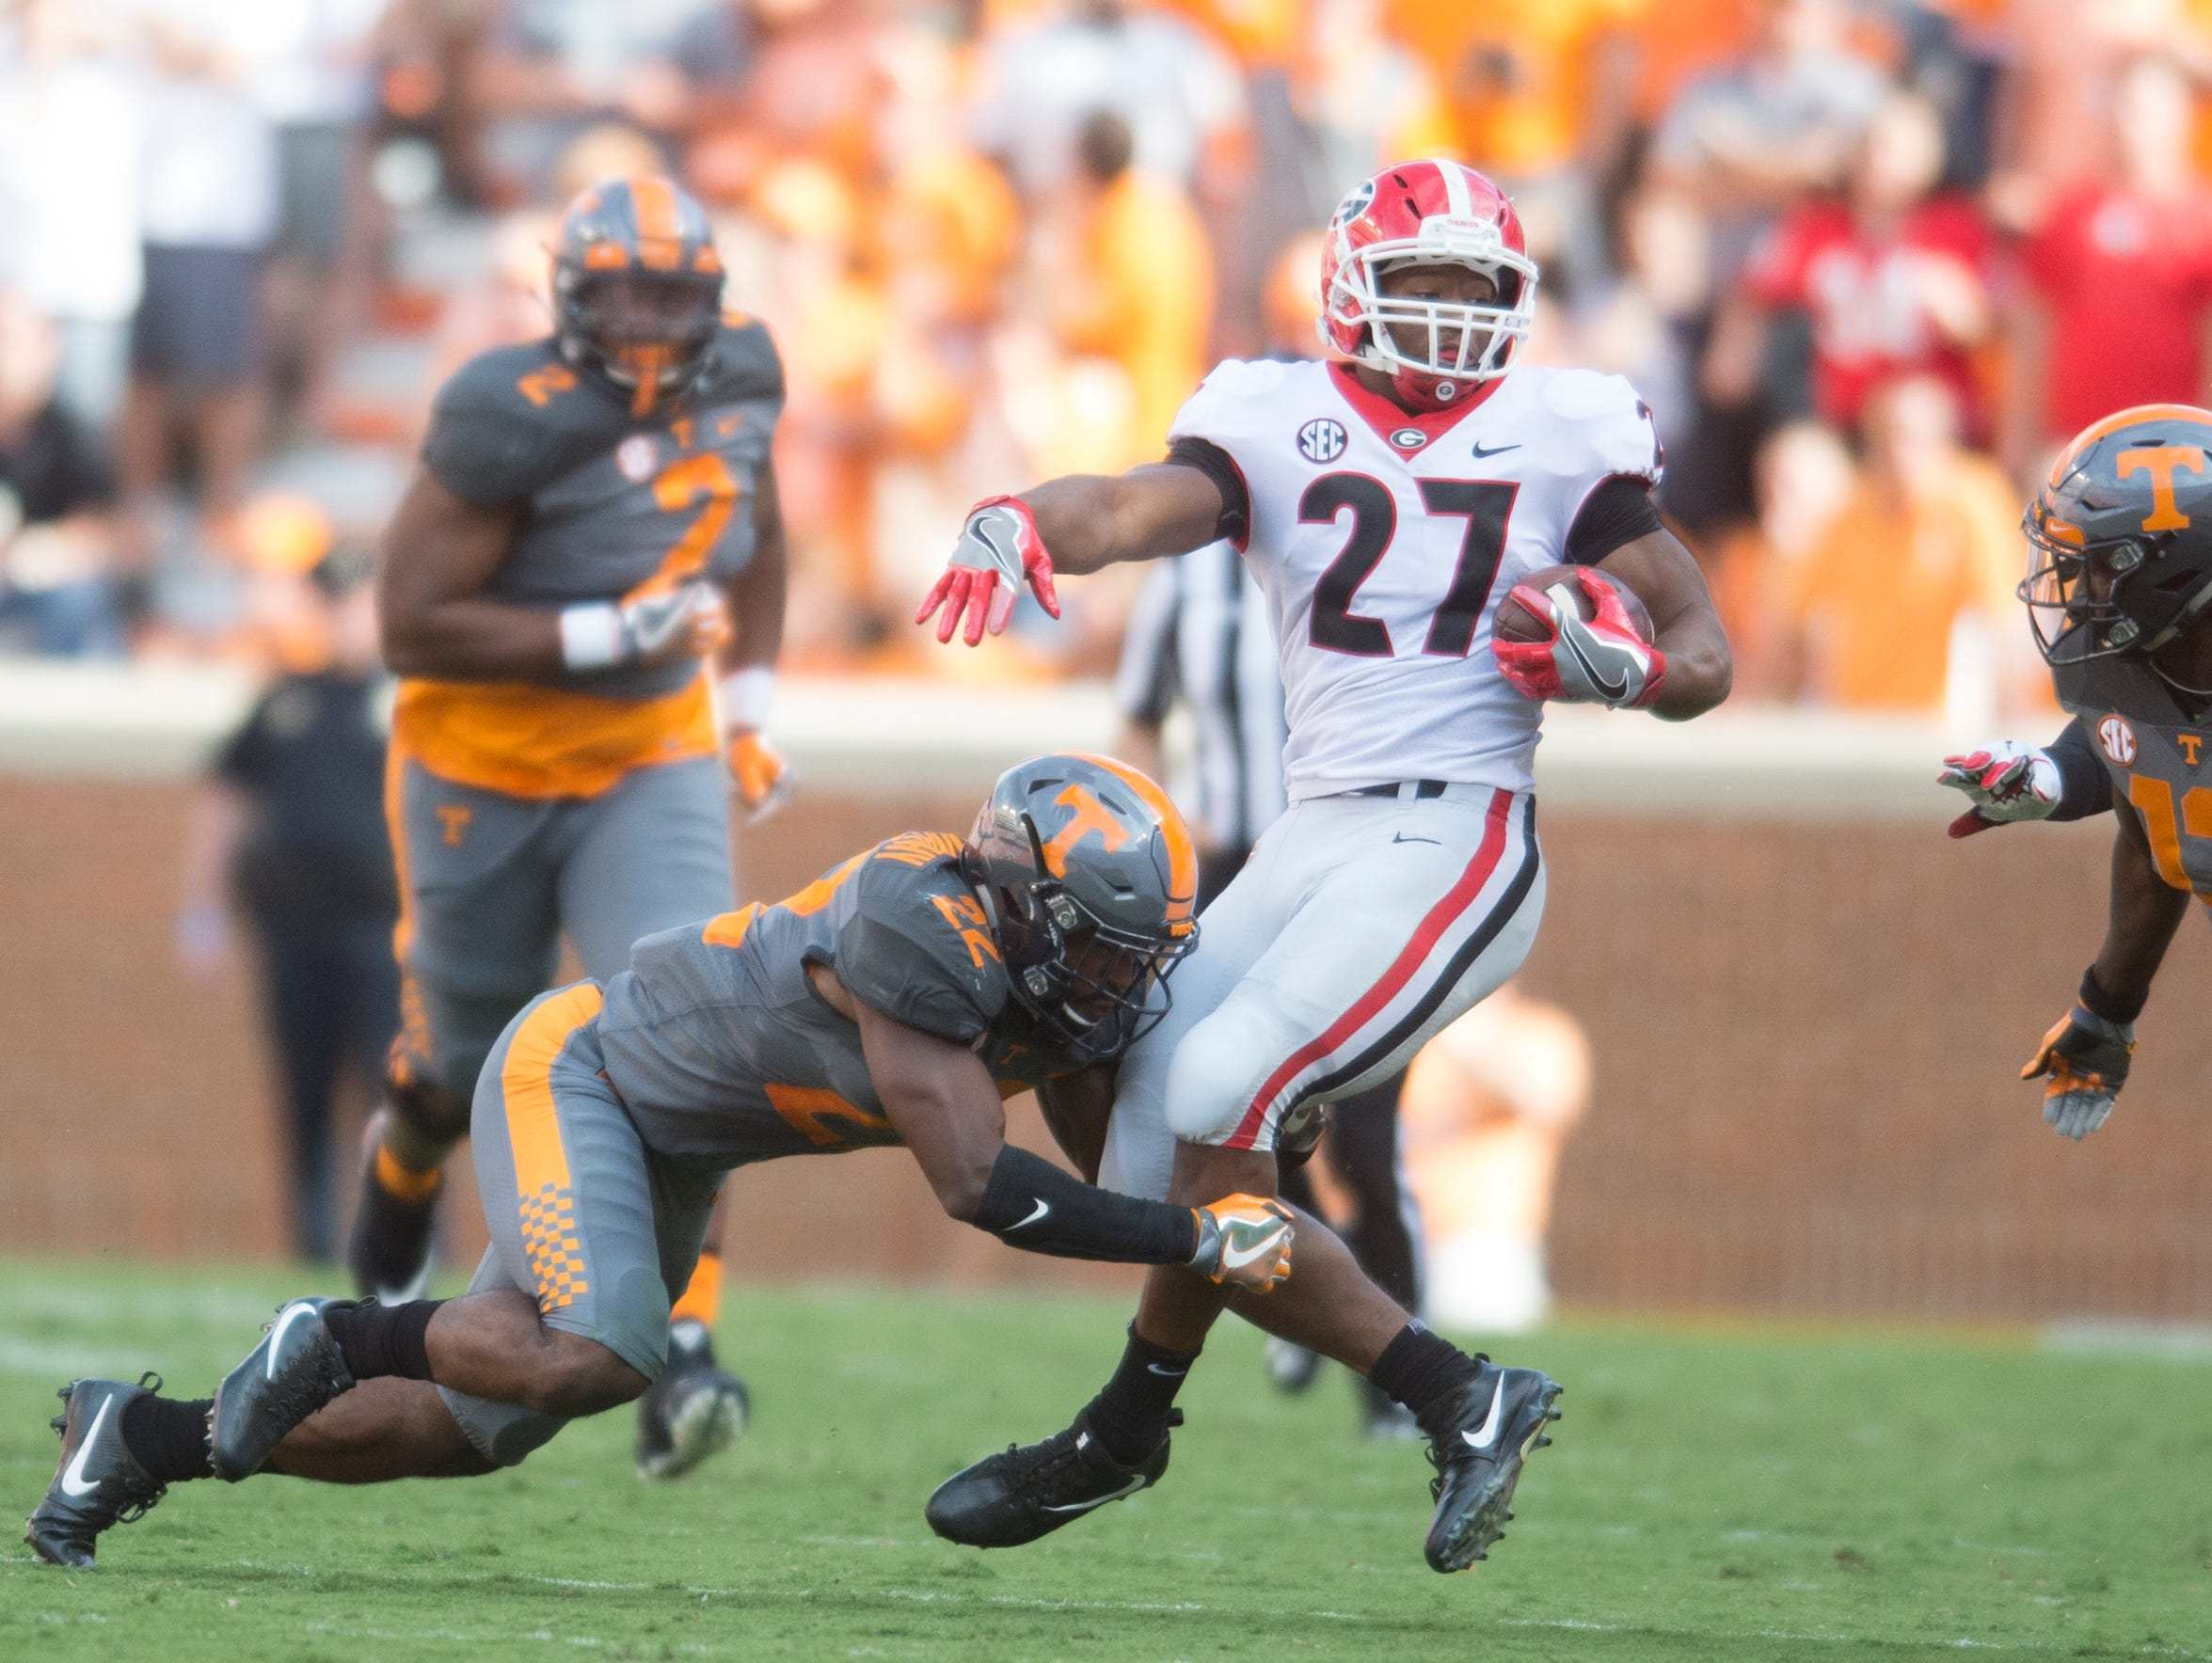 Georgia running back Nick Chubb (27) is tackled by Tennessee defensive back Micah Abernathy (22) on Sept. 30, 2017.